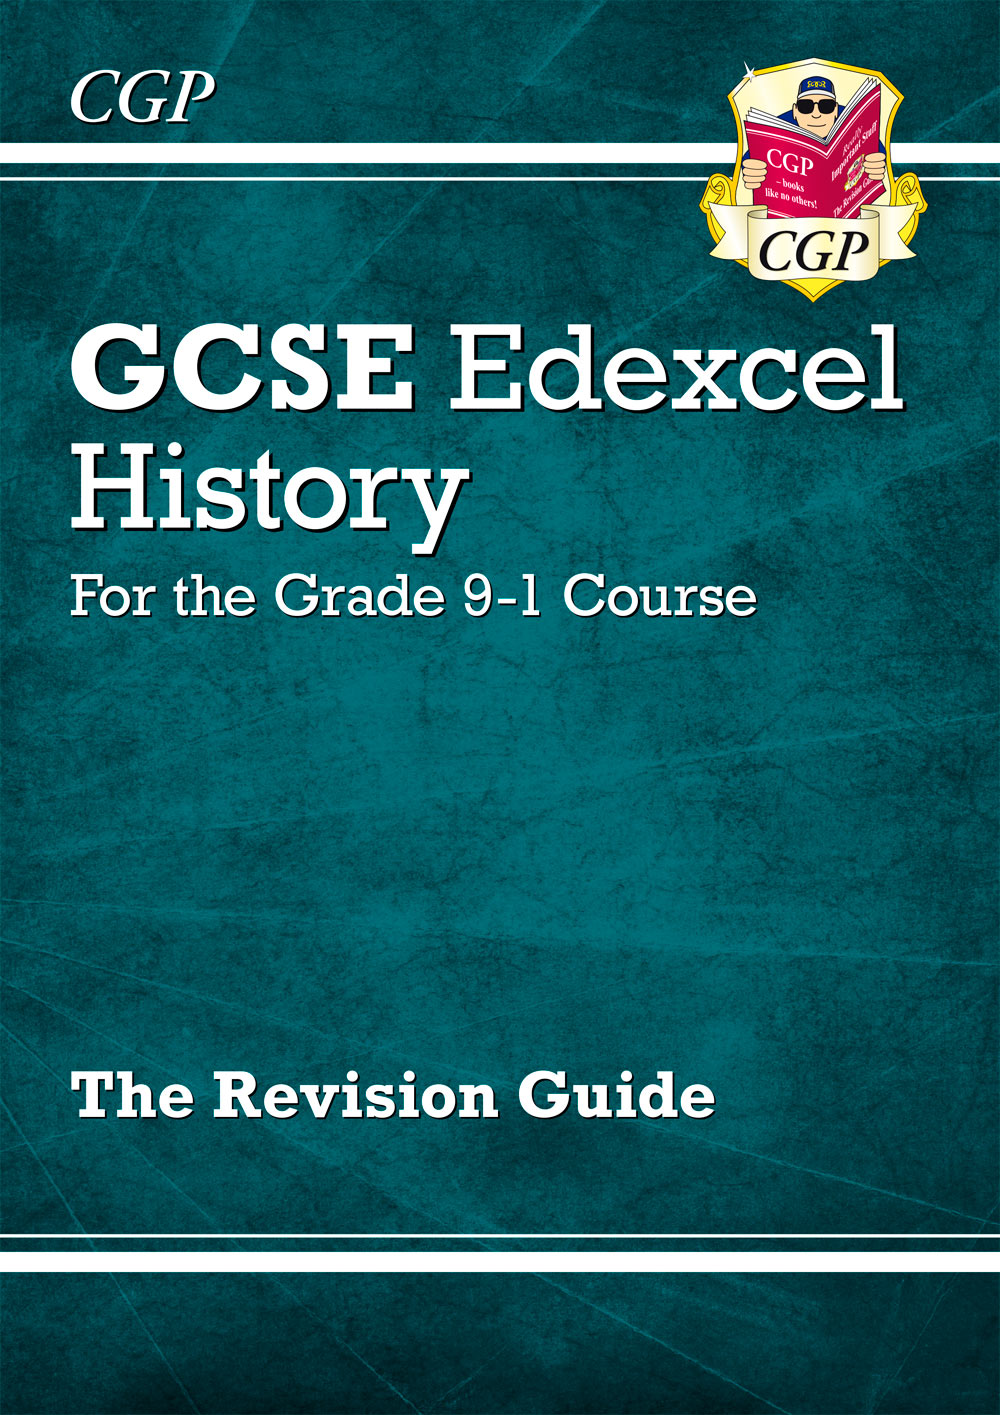 HER41 - GCSE History Edexcel Revision Guide - for the Grade 9-1 Course